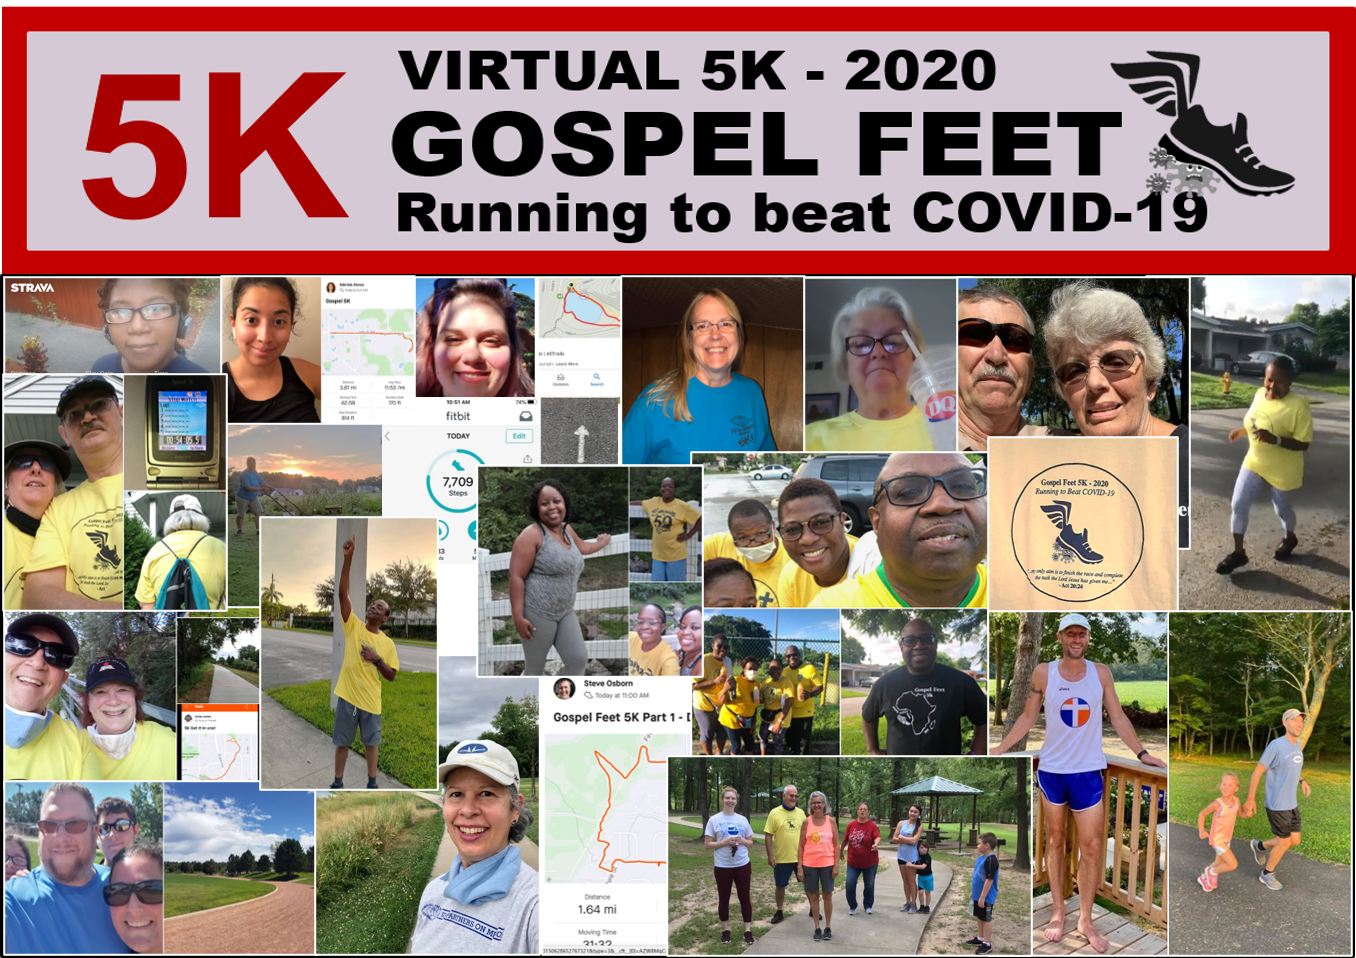 Thumbnail for the post titled: There is Still Time to Sign-up and Run!